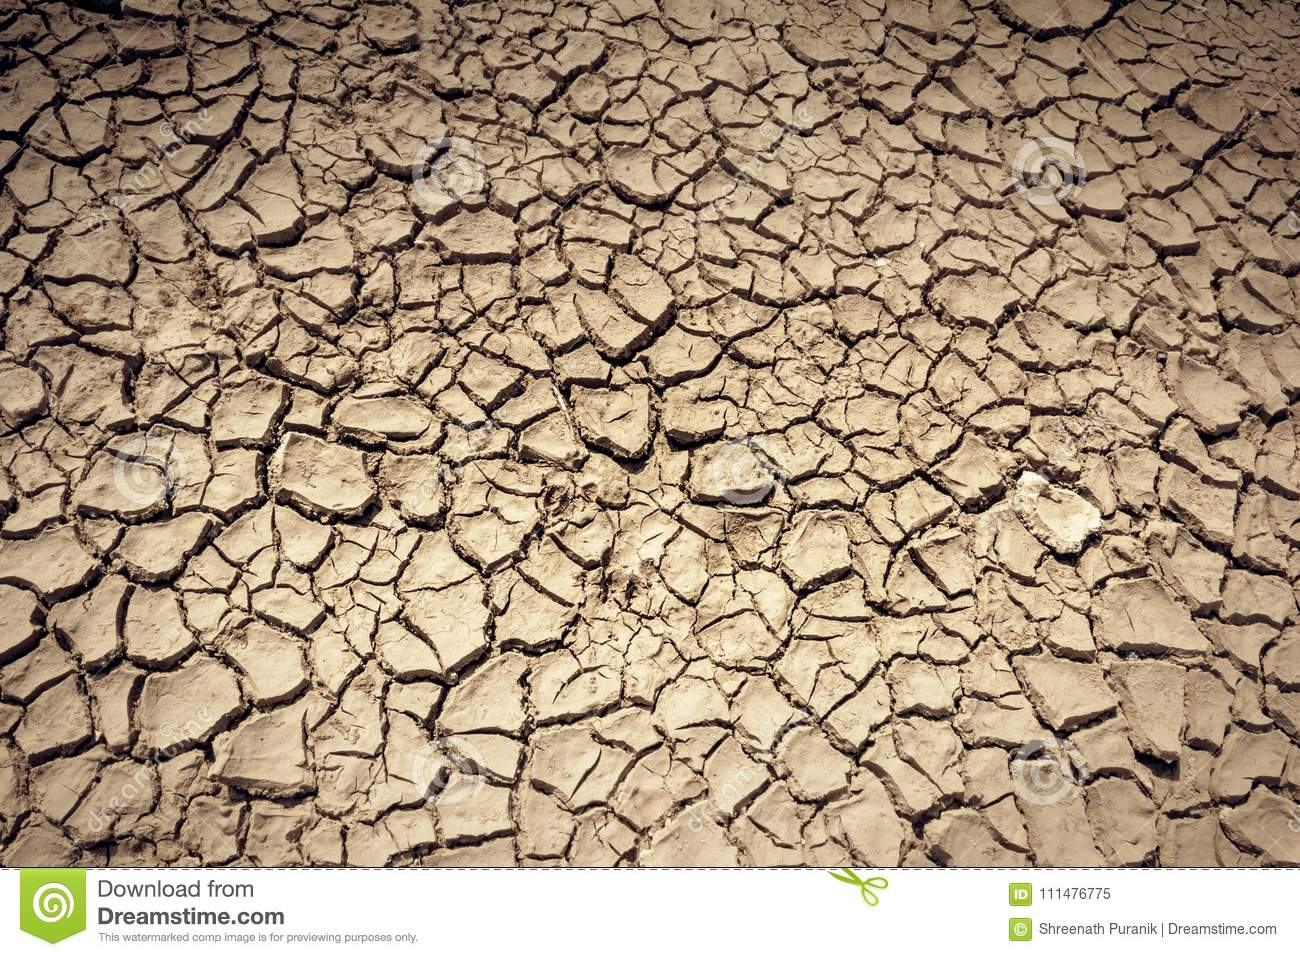 Parched earth pictures